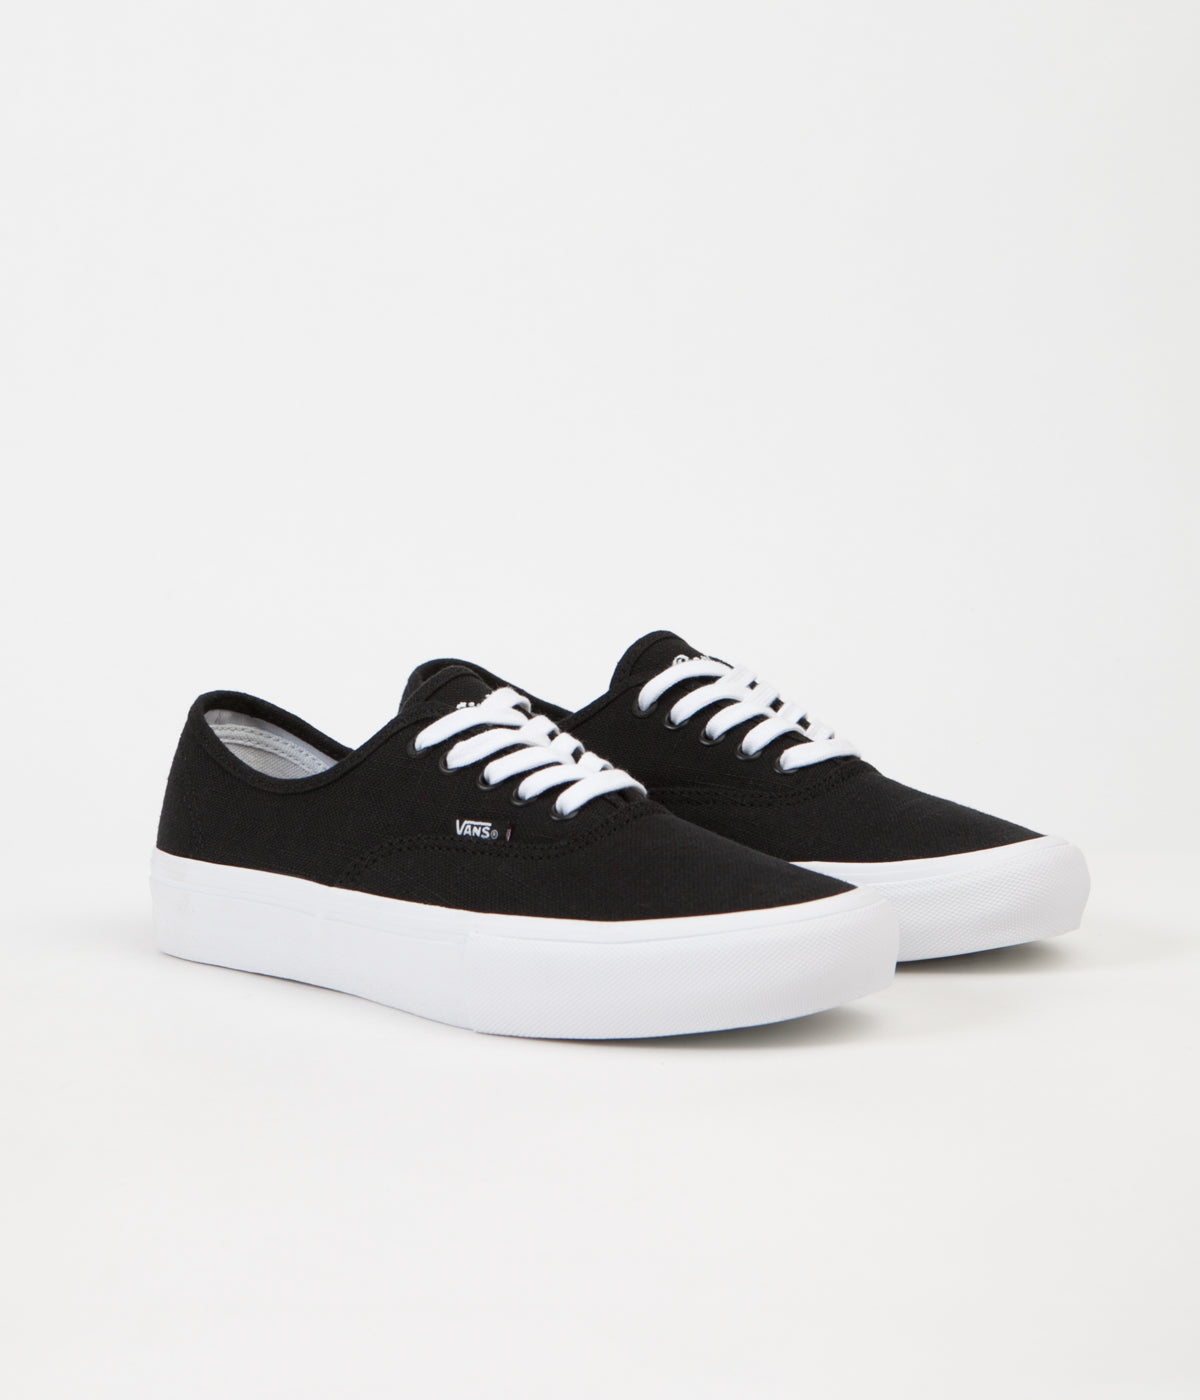 662ee58683c17e ... Vans x Civilist Authentic Pro Shoes - Black   True White ...